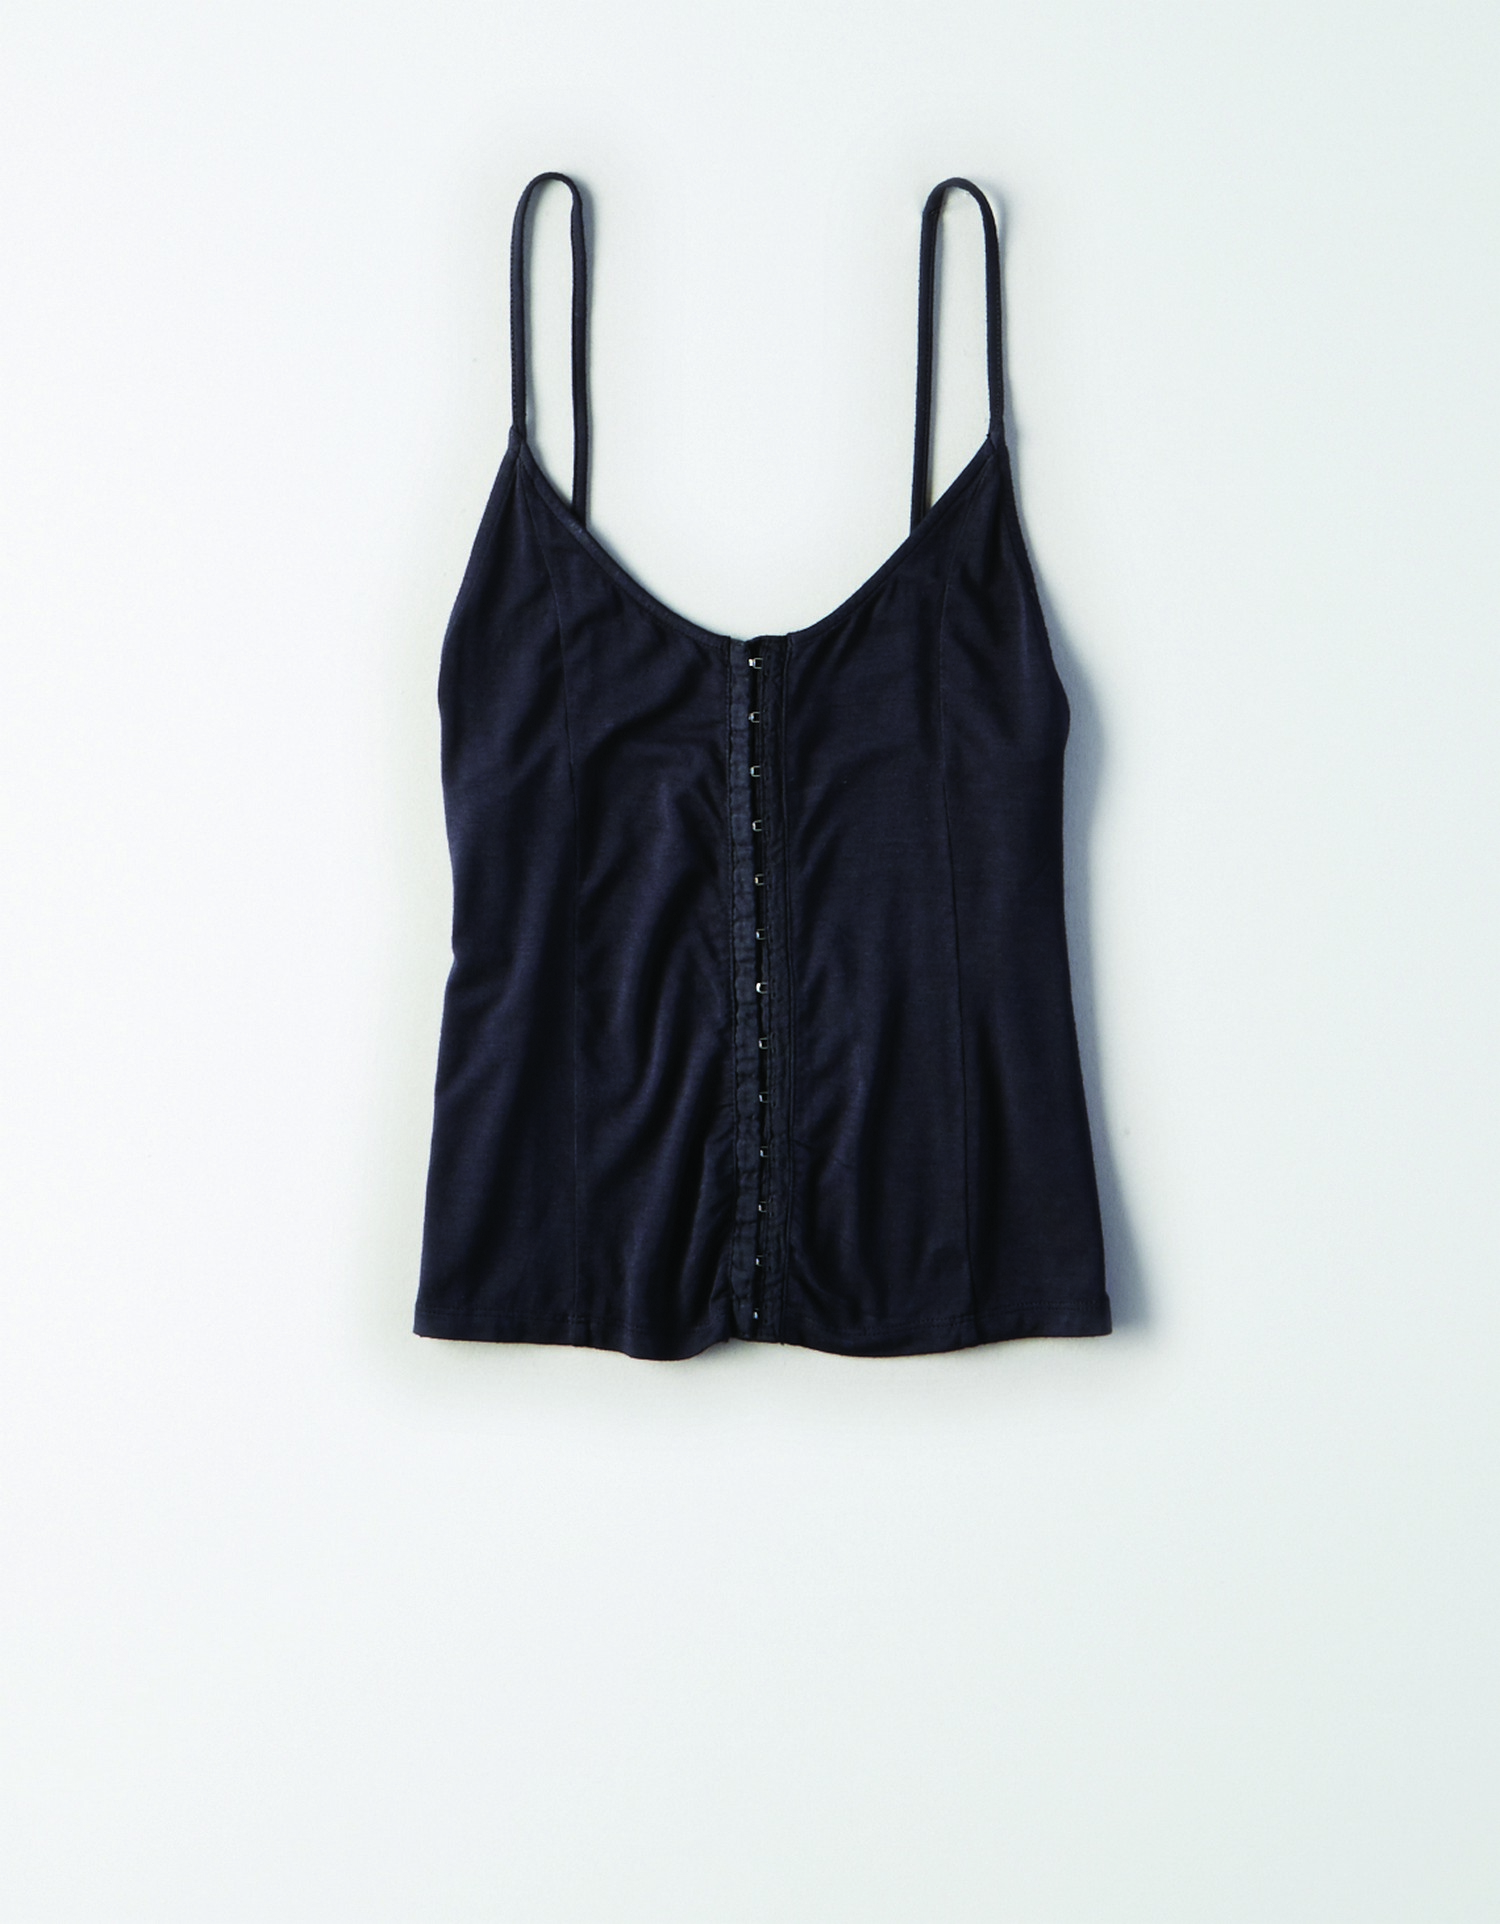 AE - W - Apparel - HOOK AND EYE FIRST ESSENTIAL TANK SOLIDS - Washed Black - Latch up front - tank AL